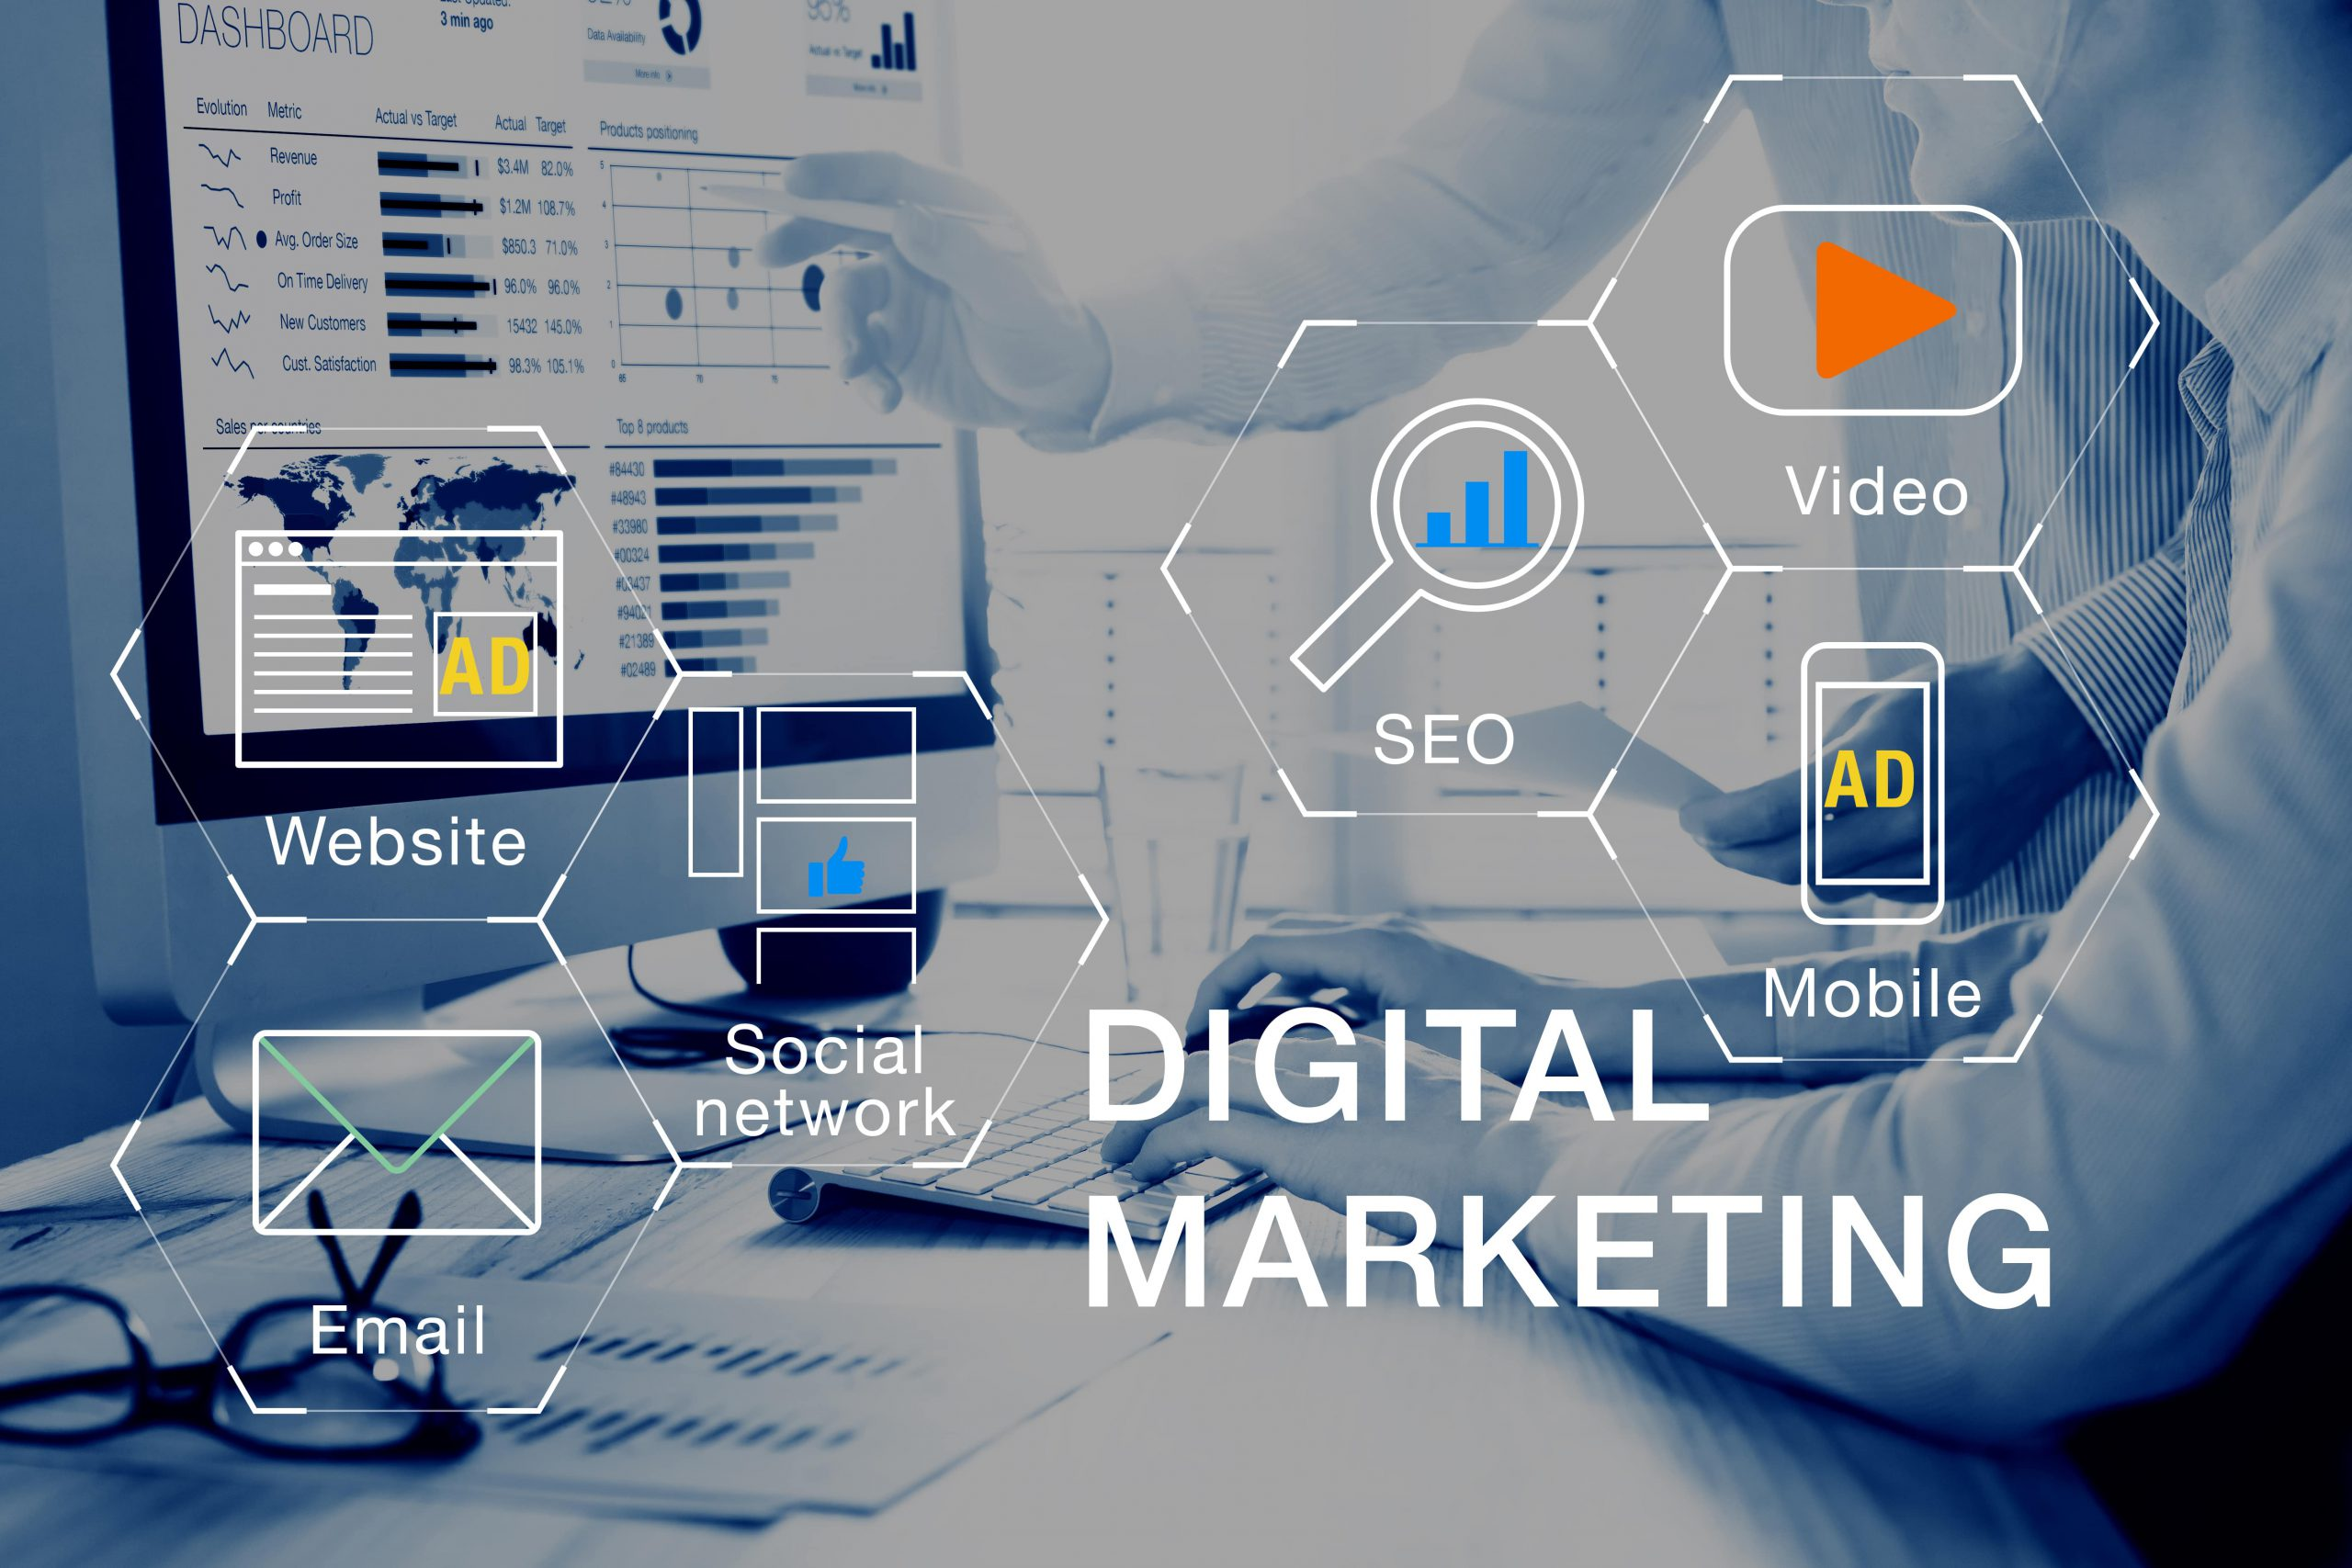 digital marketing, easy services club